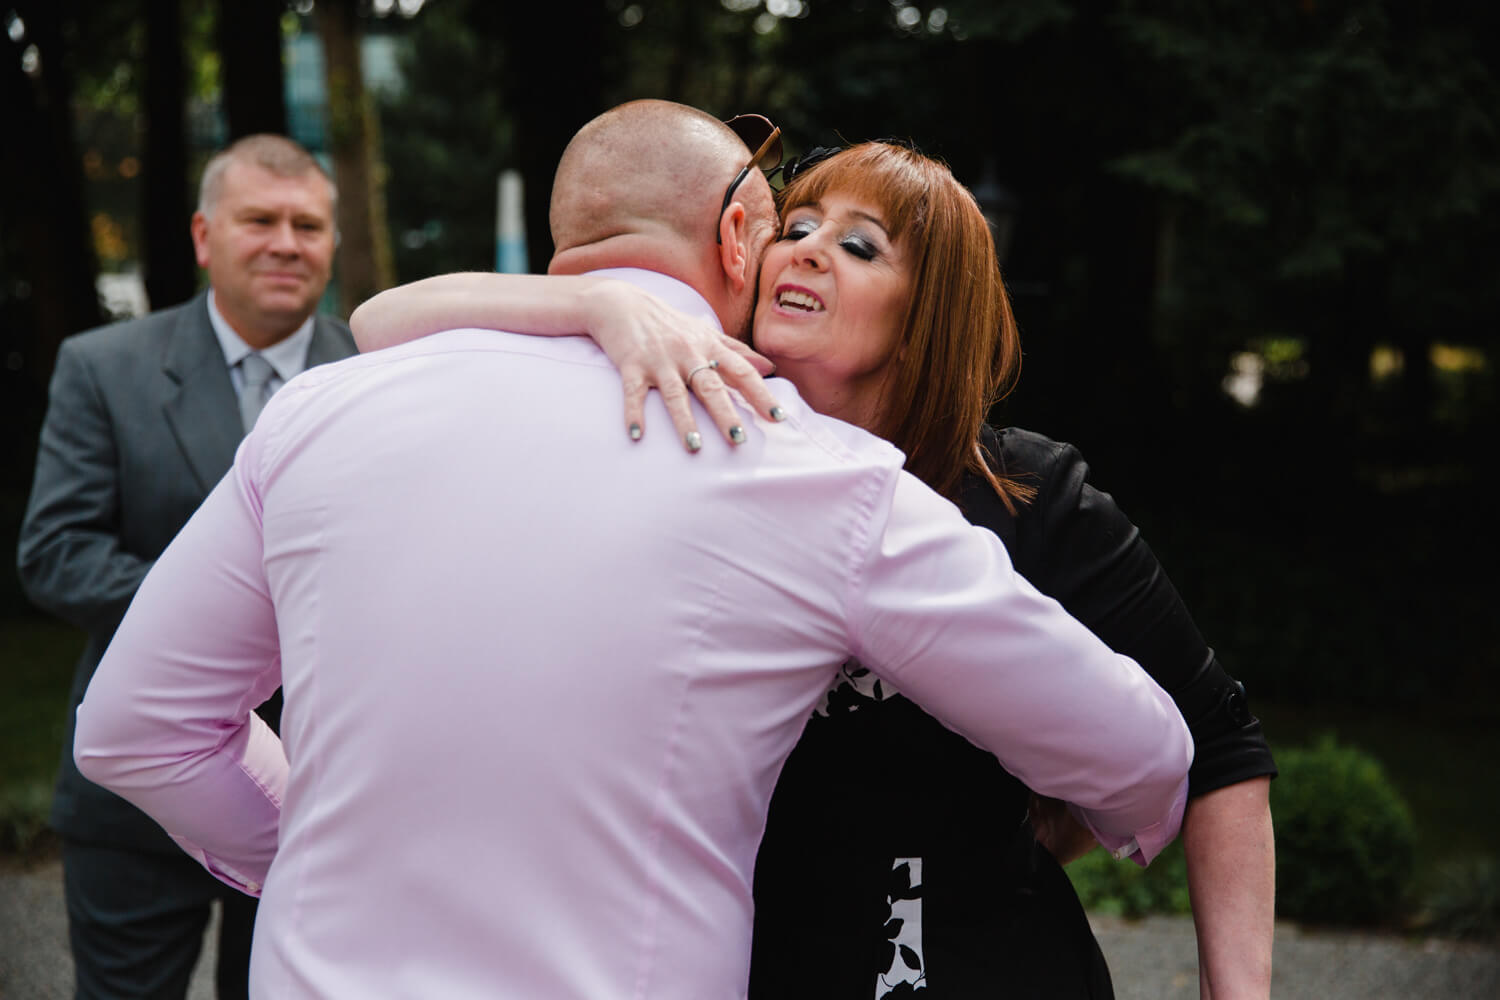 maid of honour sharing hug with groom before wedding service